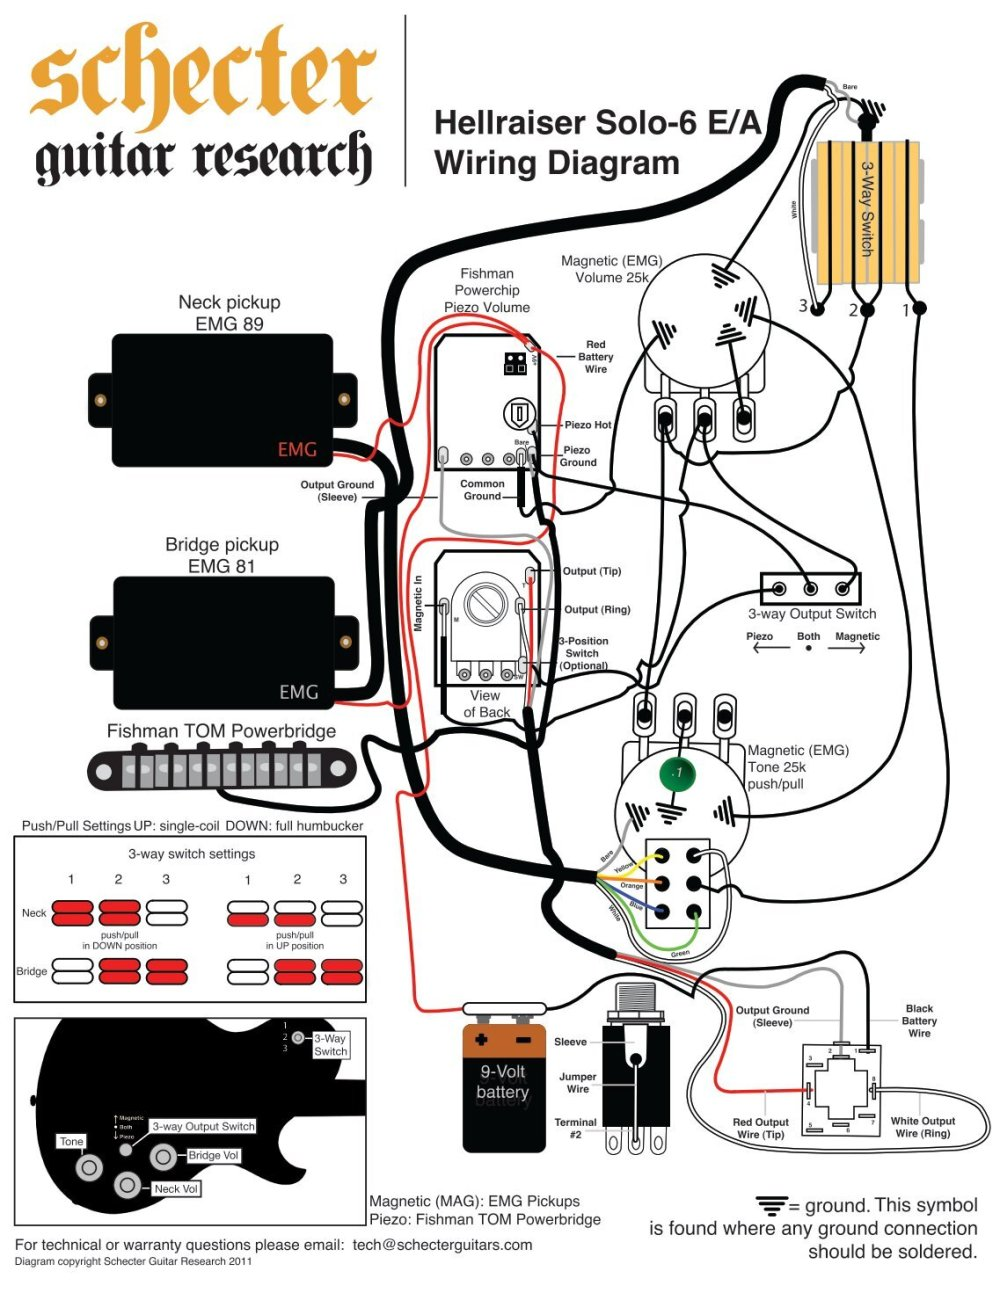 medium resolution of electric guitar wiring diagram for schecter schecter guitar wiring diagrams 2 pickups squier guitar wiring diagrams